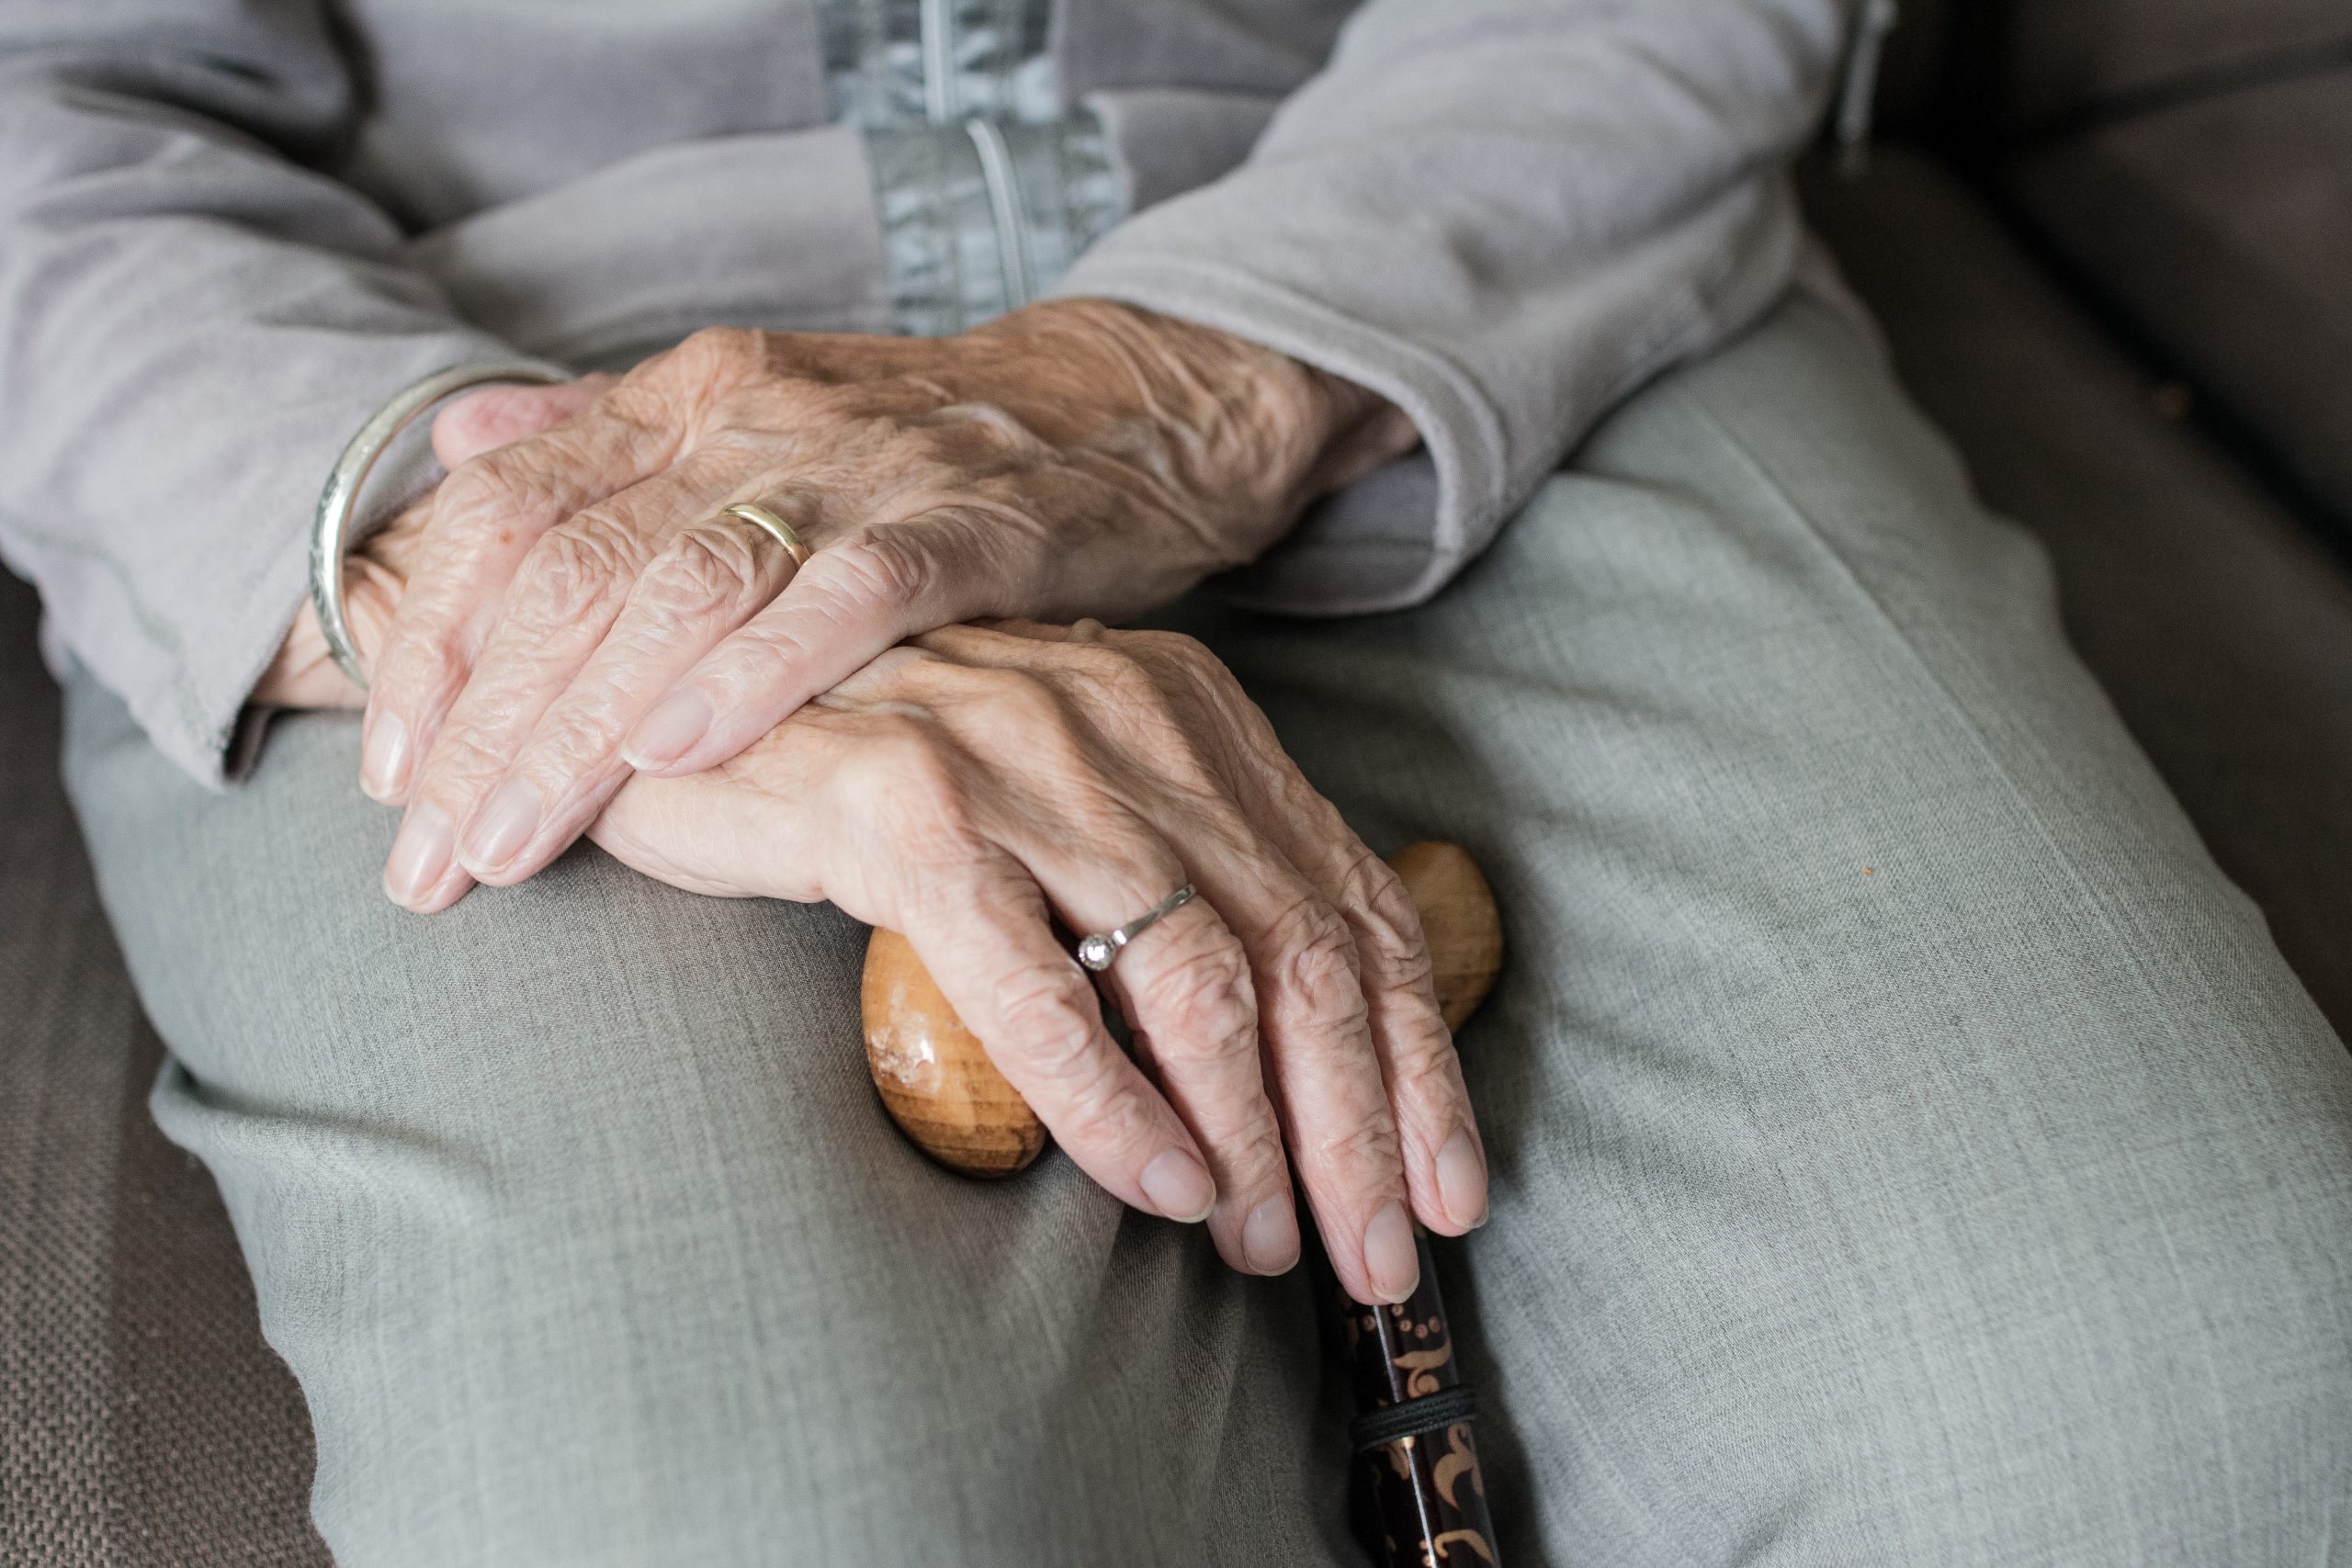 Aged care facilities limiting family visits during pandemic